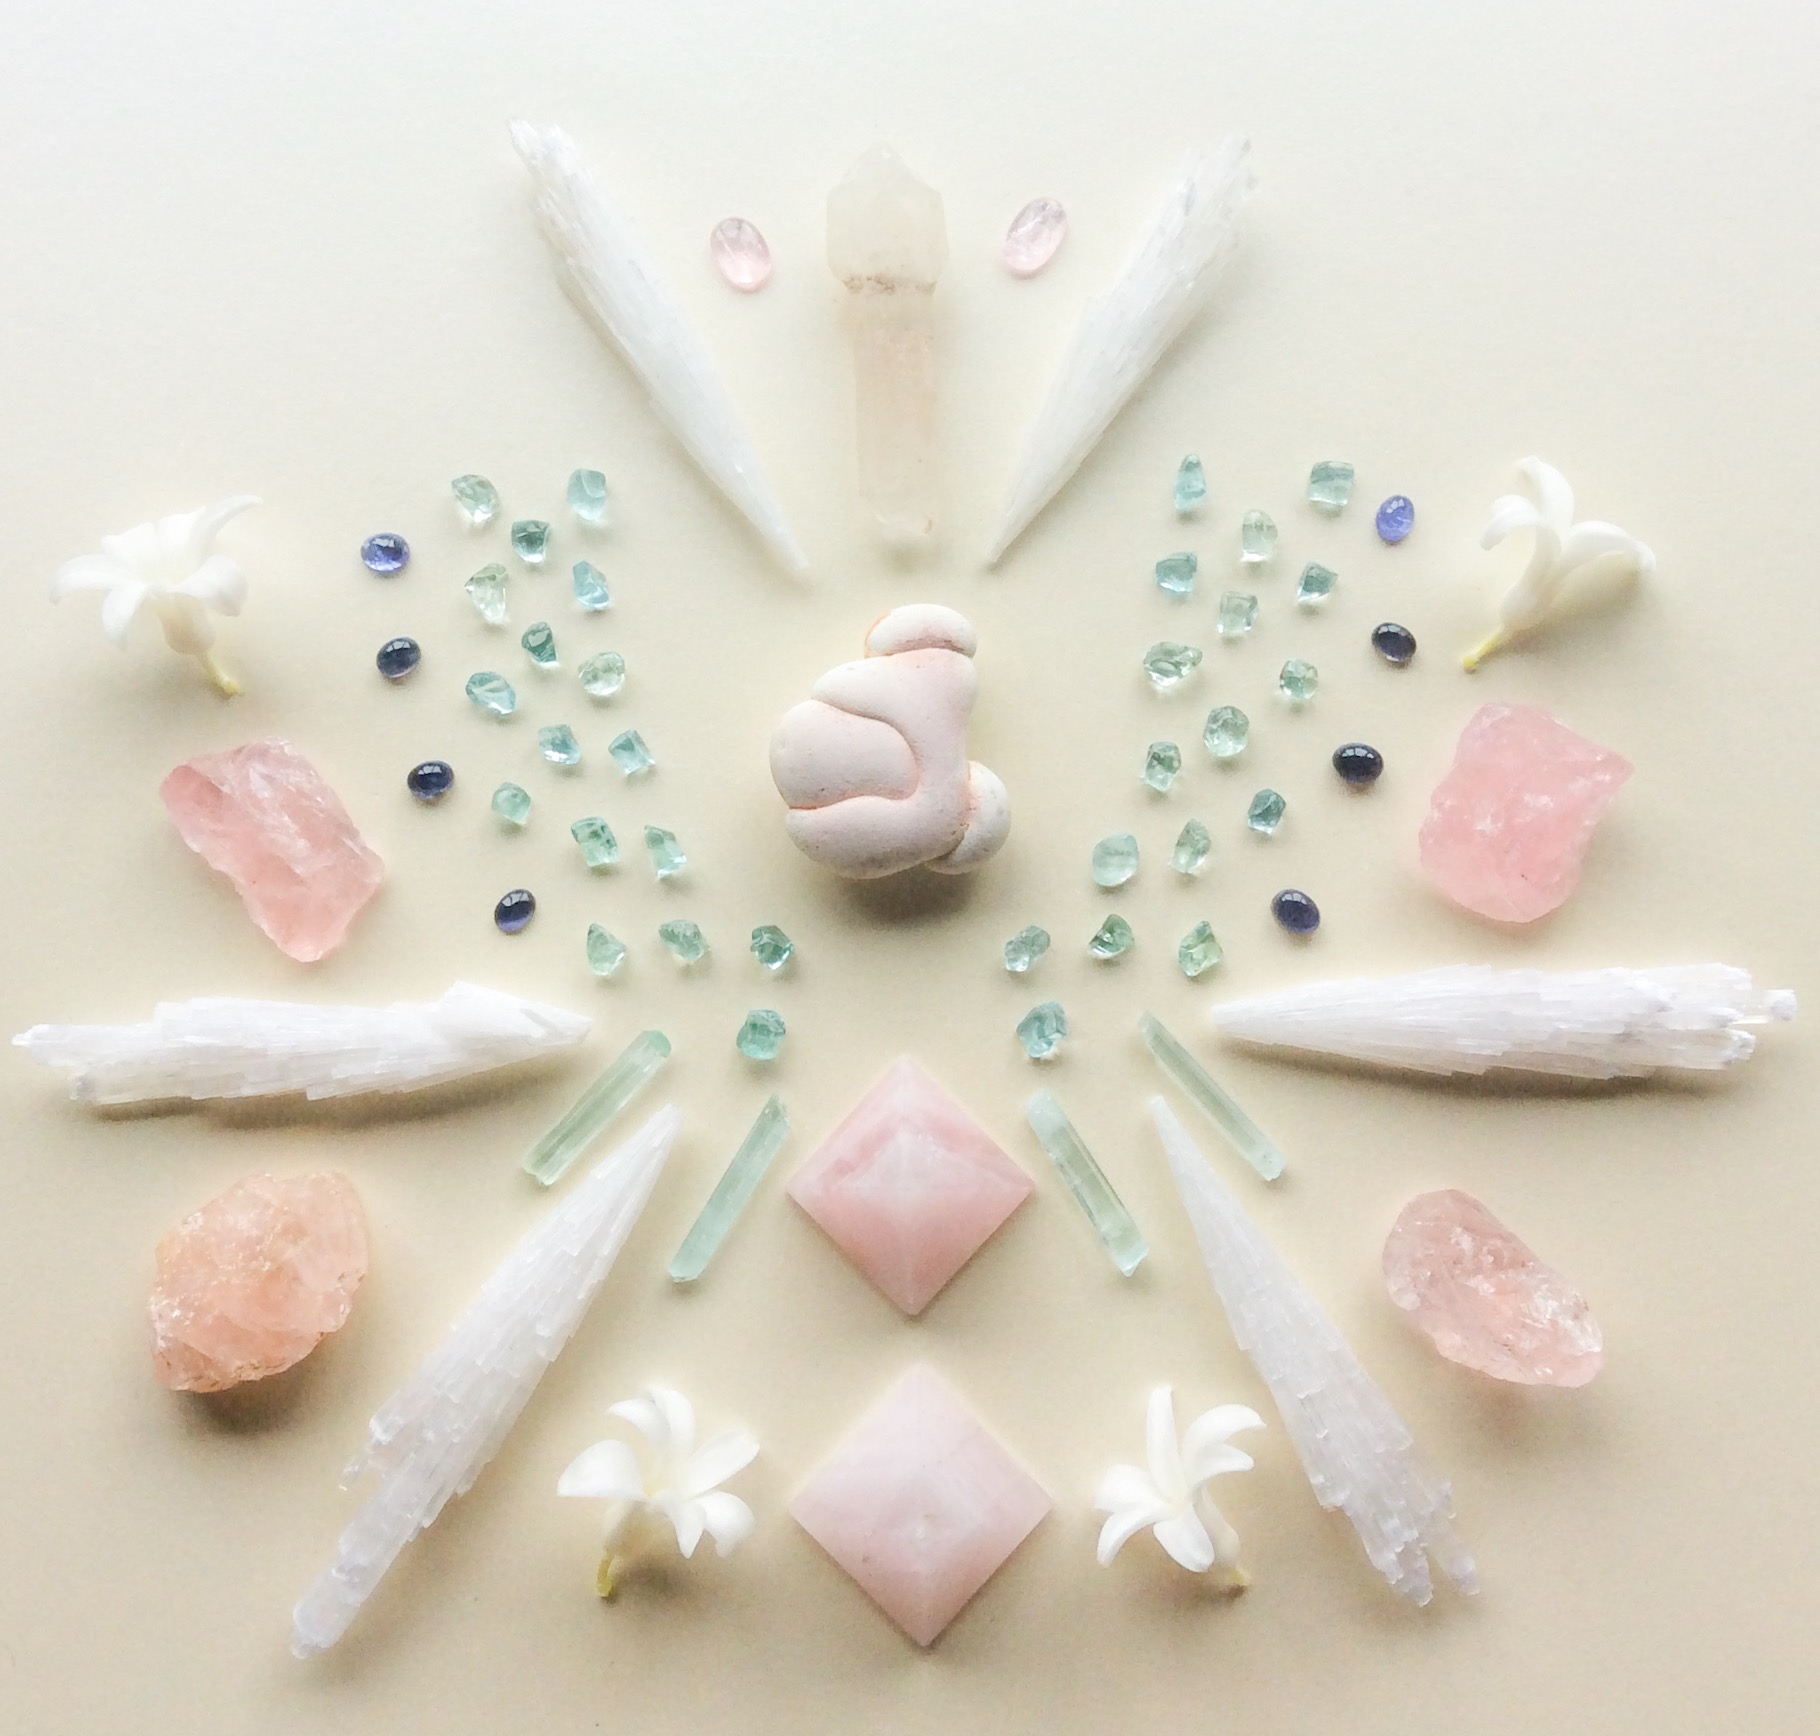 Menalite Stone, Aquamarine, Iolite, Tanzanite, Scepter Quartz, Scolecite, Rose Quartz, Morganite and Hyacinth